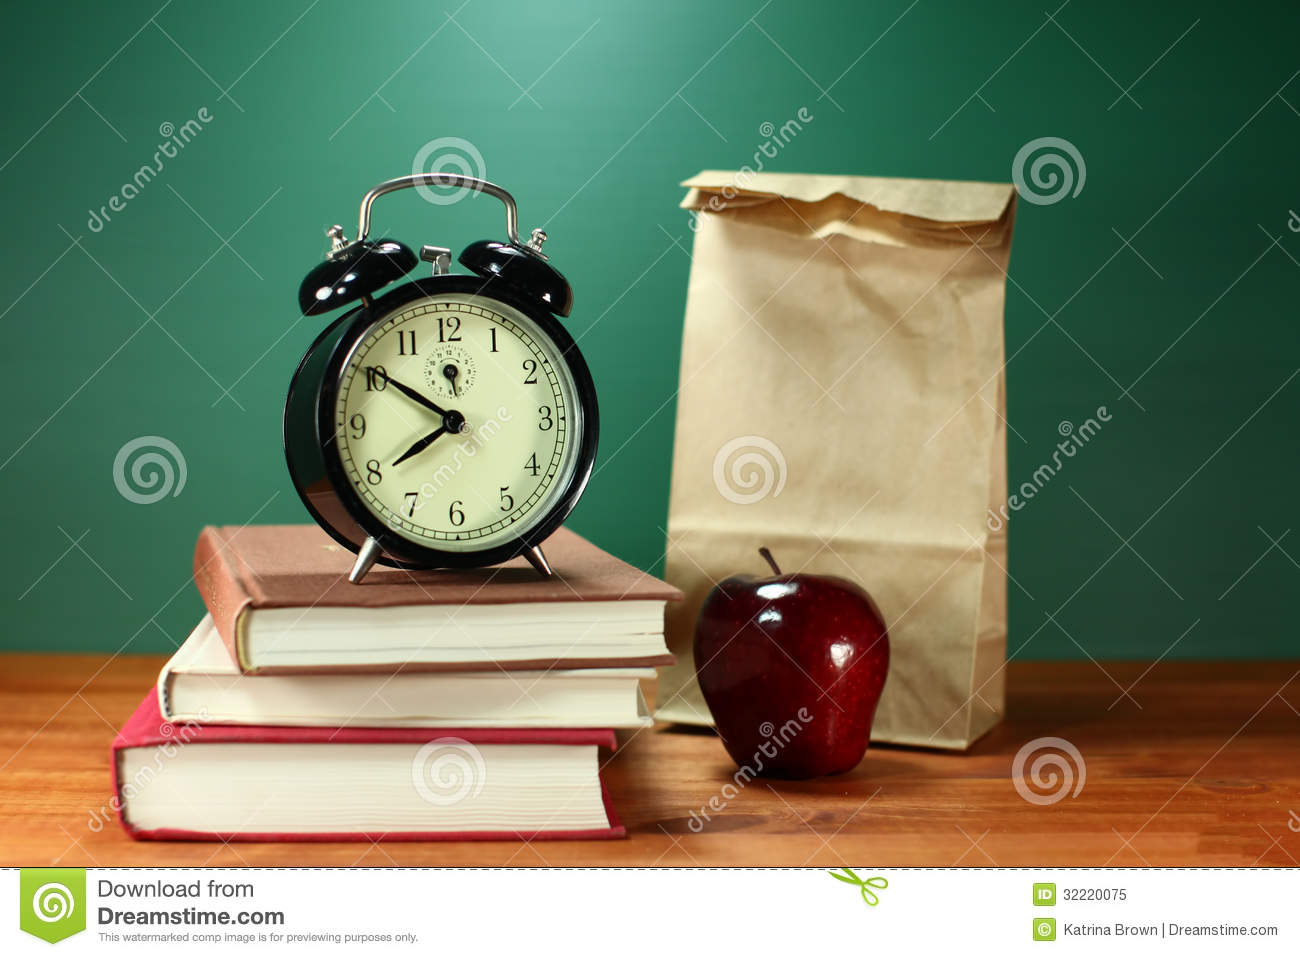 Kids Desk Clock Lunch Apple Books And Clock On Desk At School Royalty